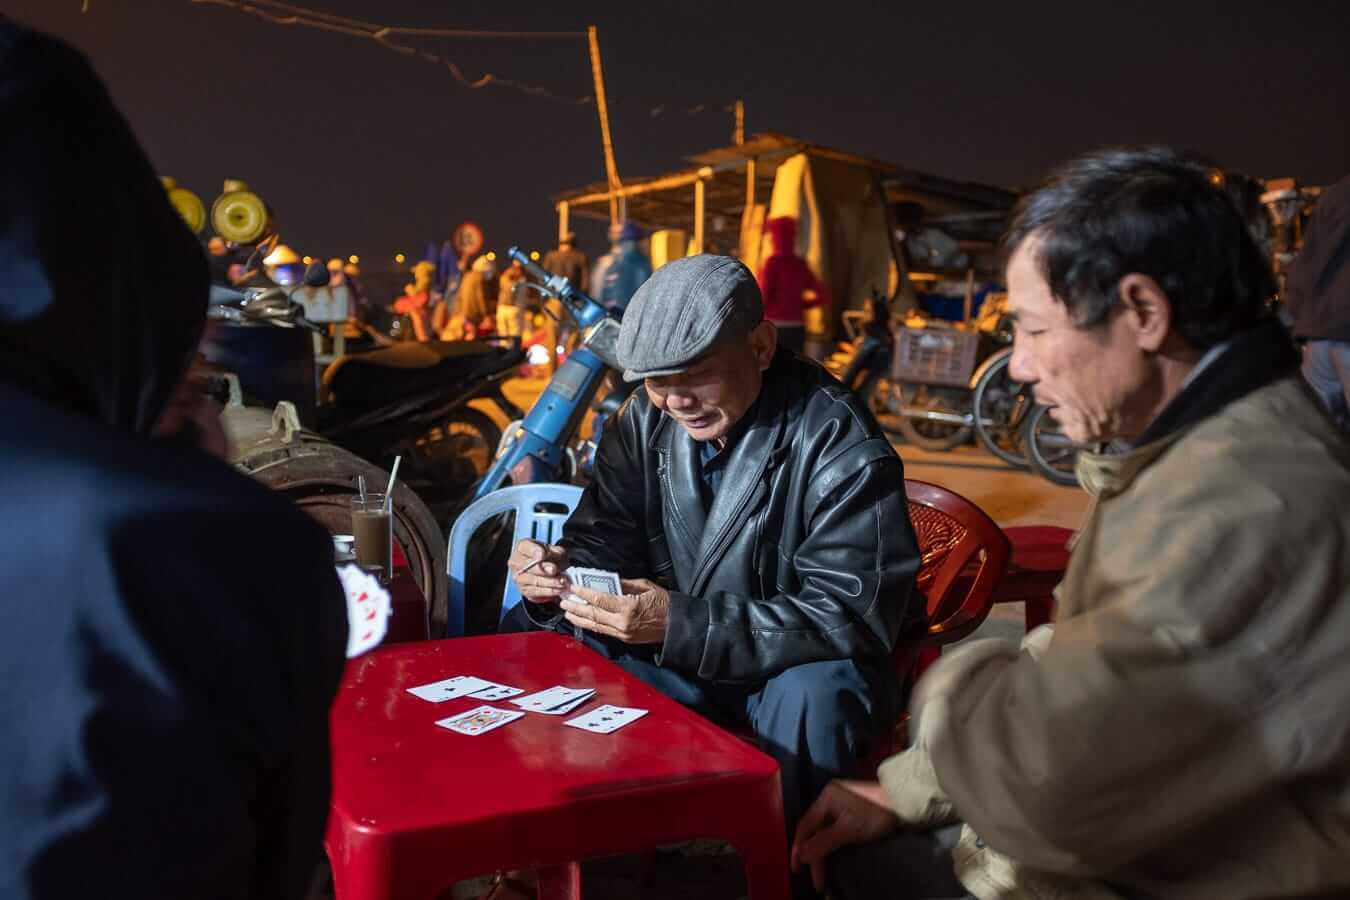 Game of cards: Hoi An Photography Tour